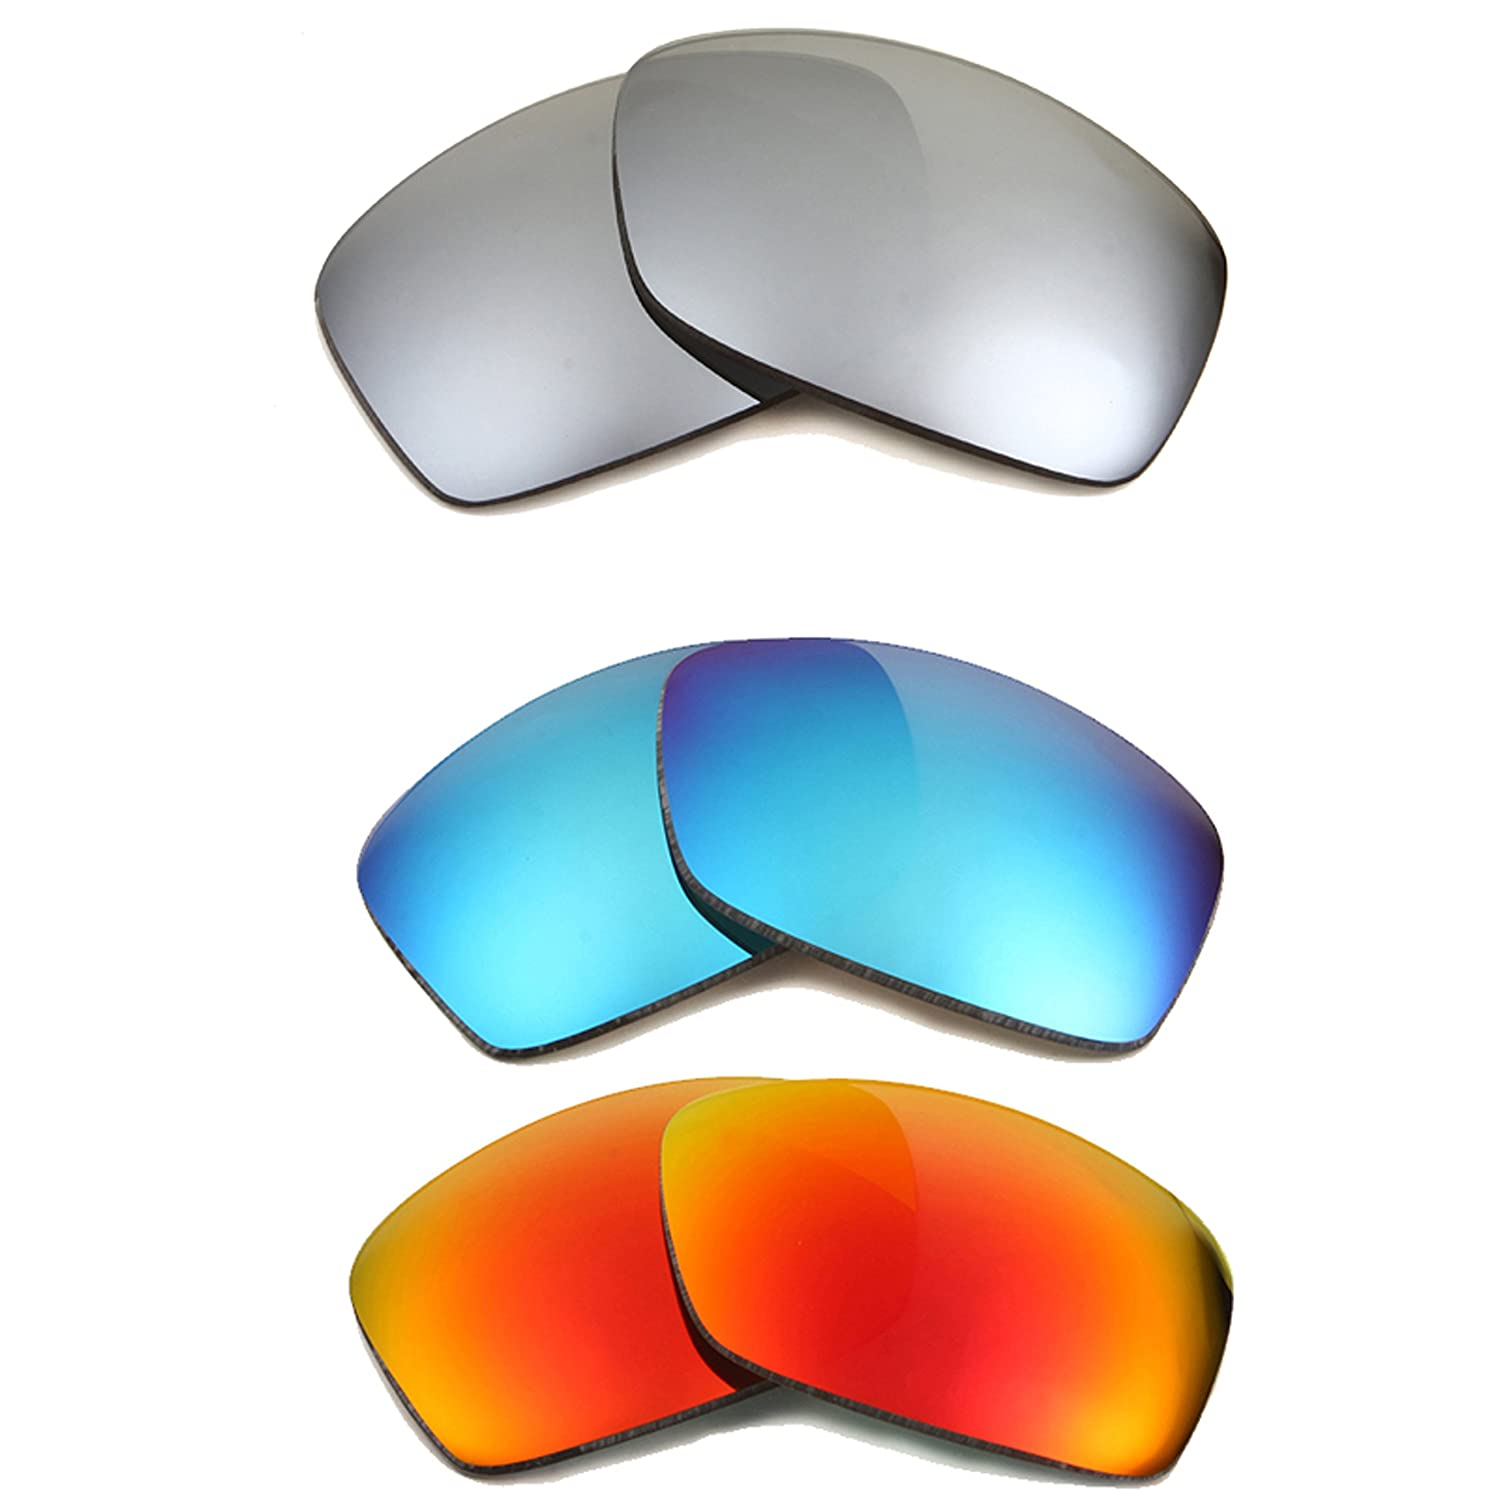 210220a8eca HIJINX Replacement Lenses Blue Red   Silver by SEEK fits OAKLEY Sunglasses  at Amazon Men s Clothing store  Replacement Sunglass Lenses